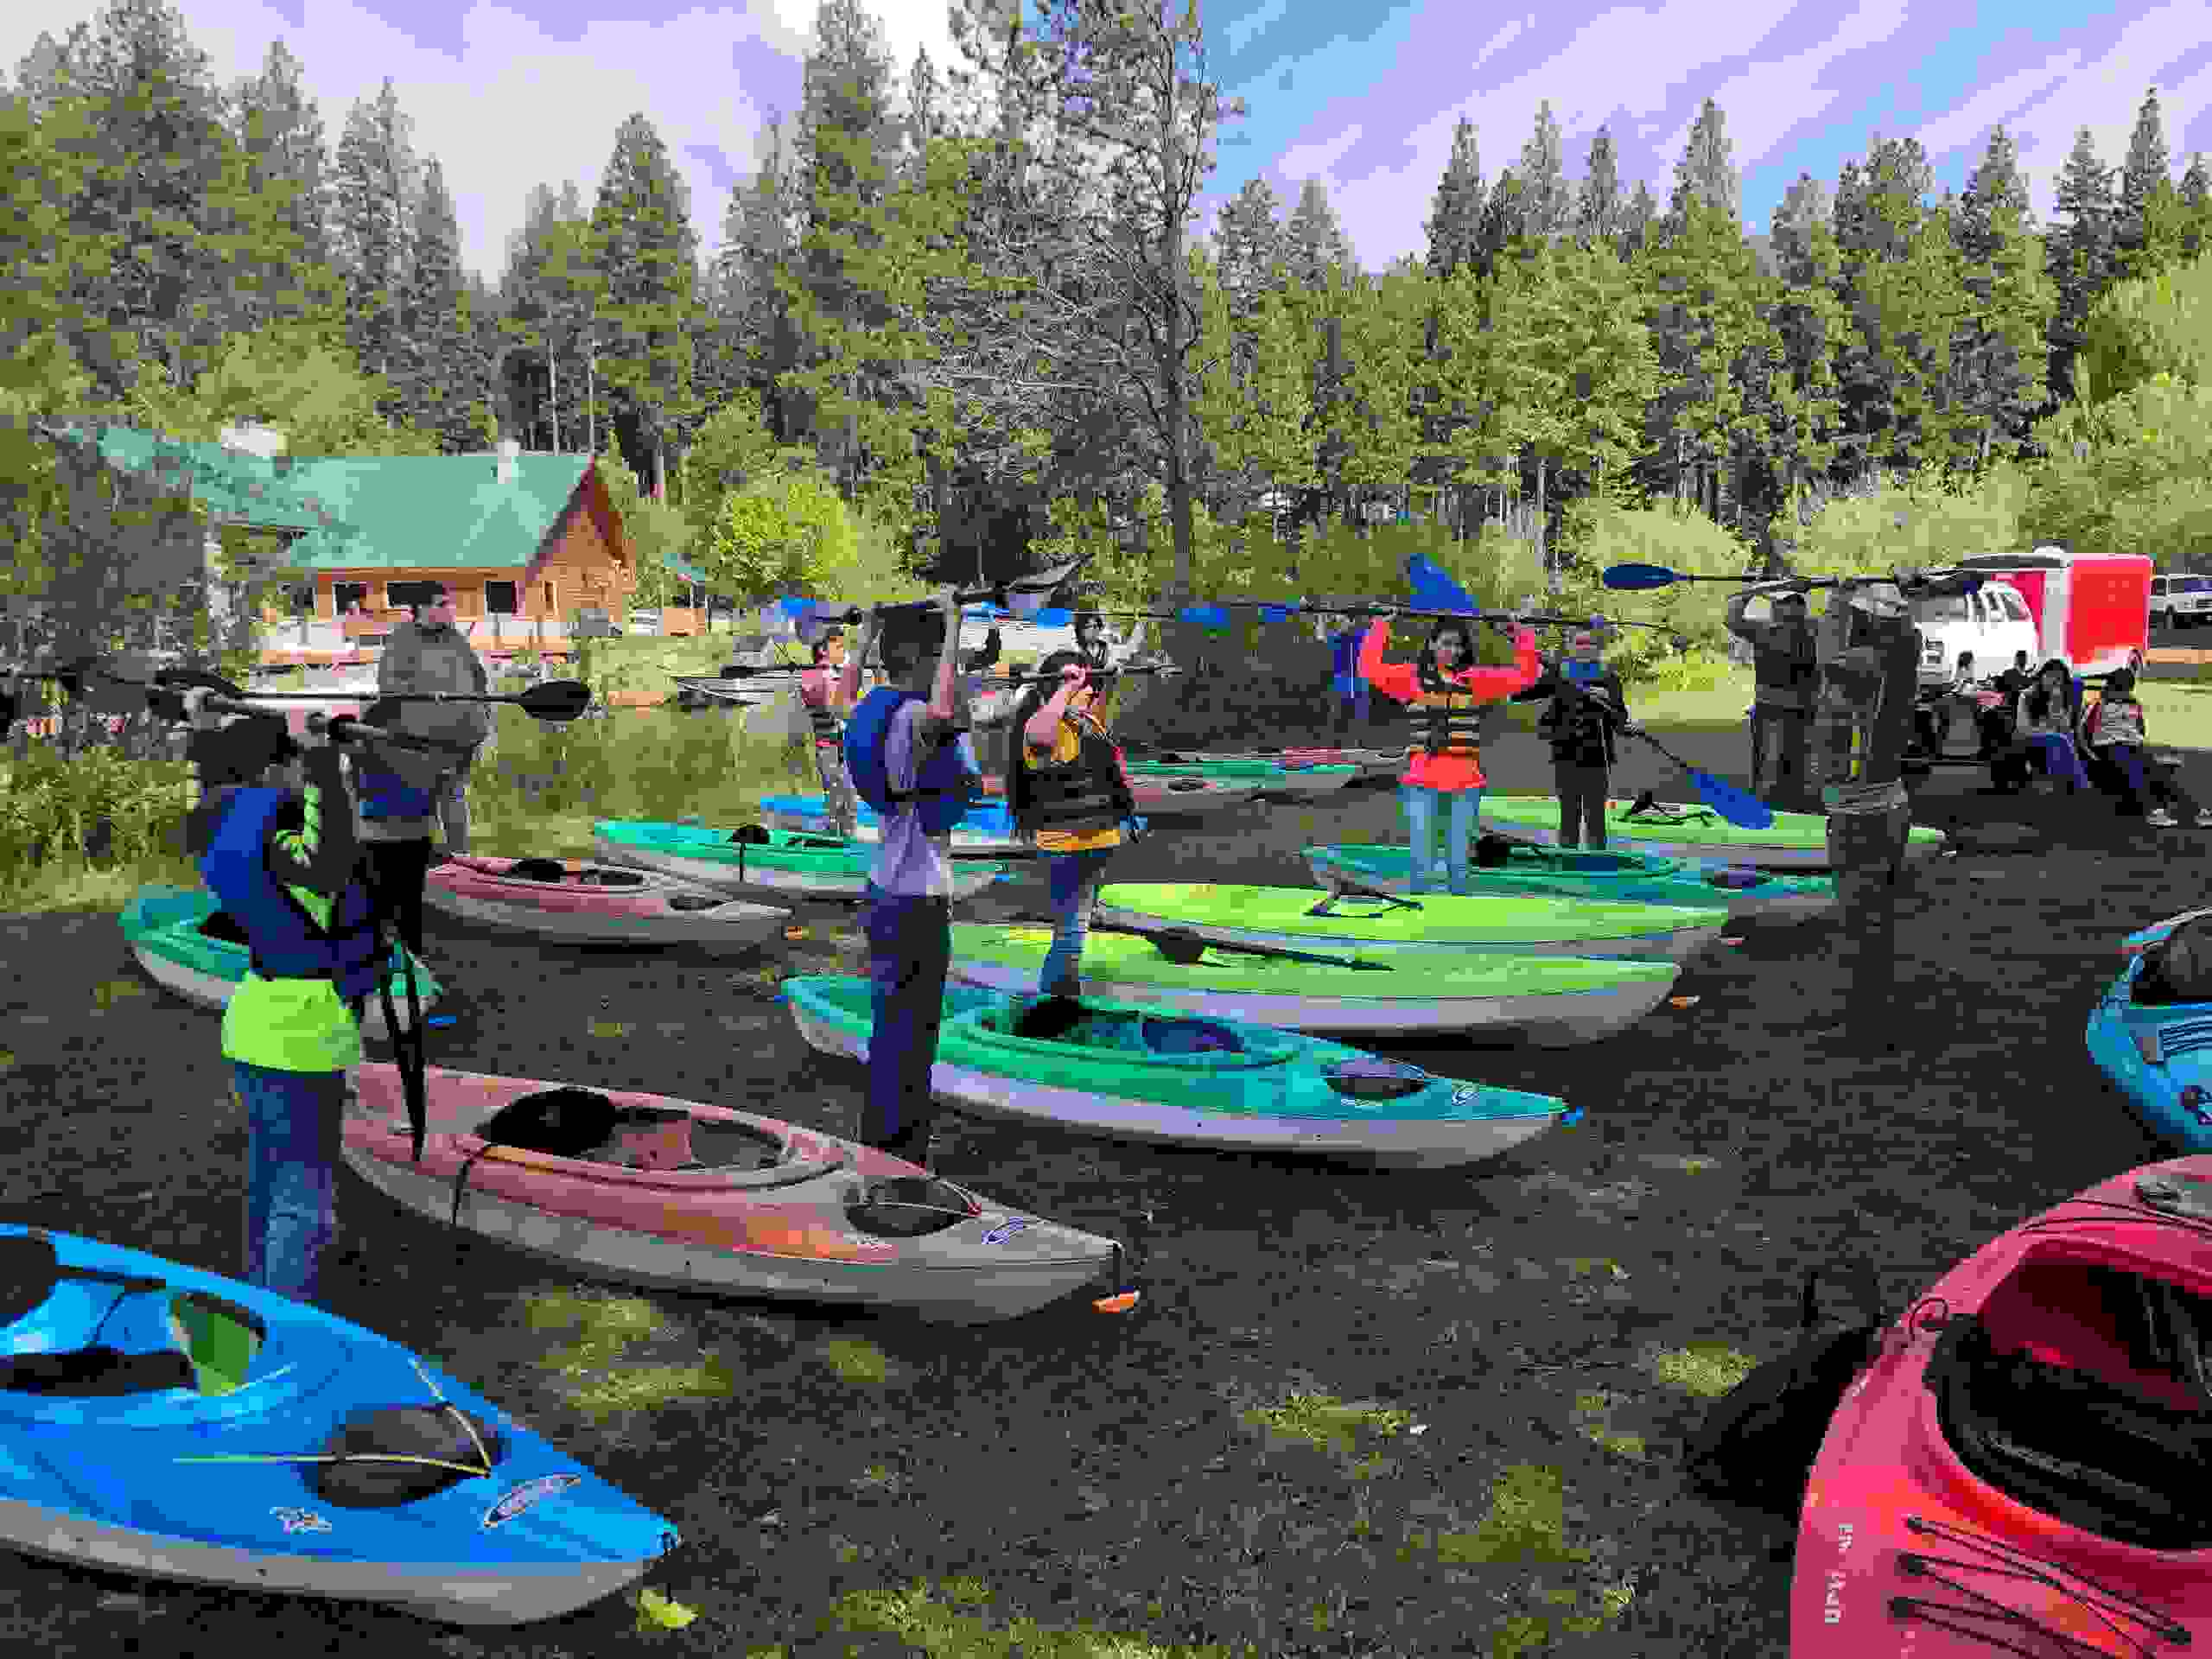 Kayak lessons being given by Sky Lakes Wilderness Adventures